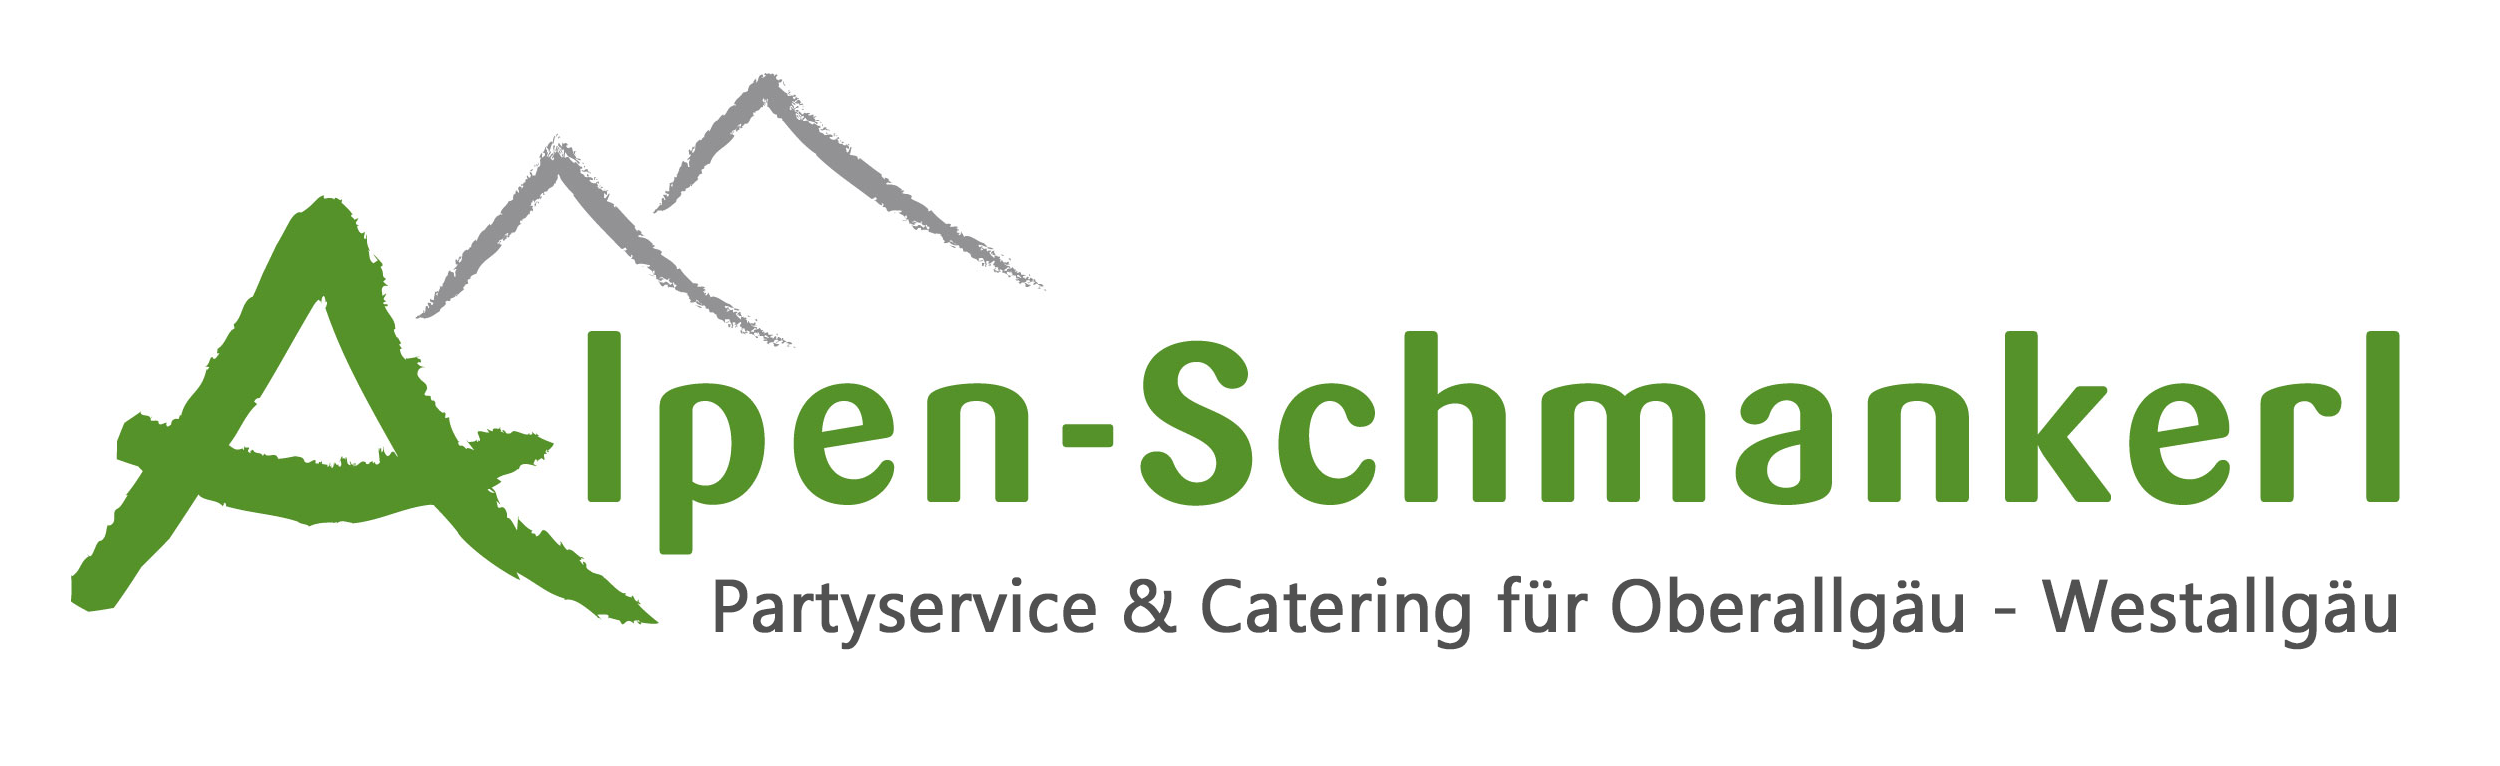 Alpen-Schmankerl Partyservice & Catering